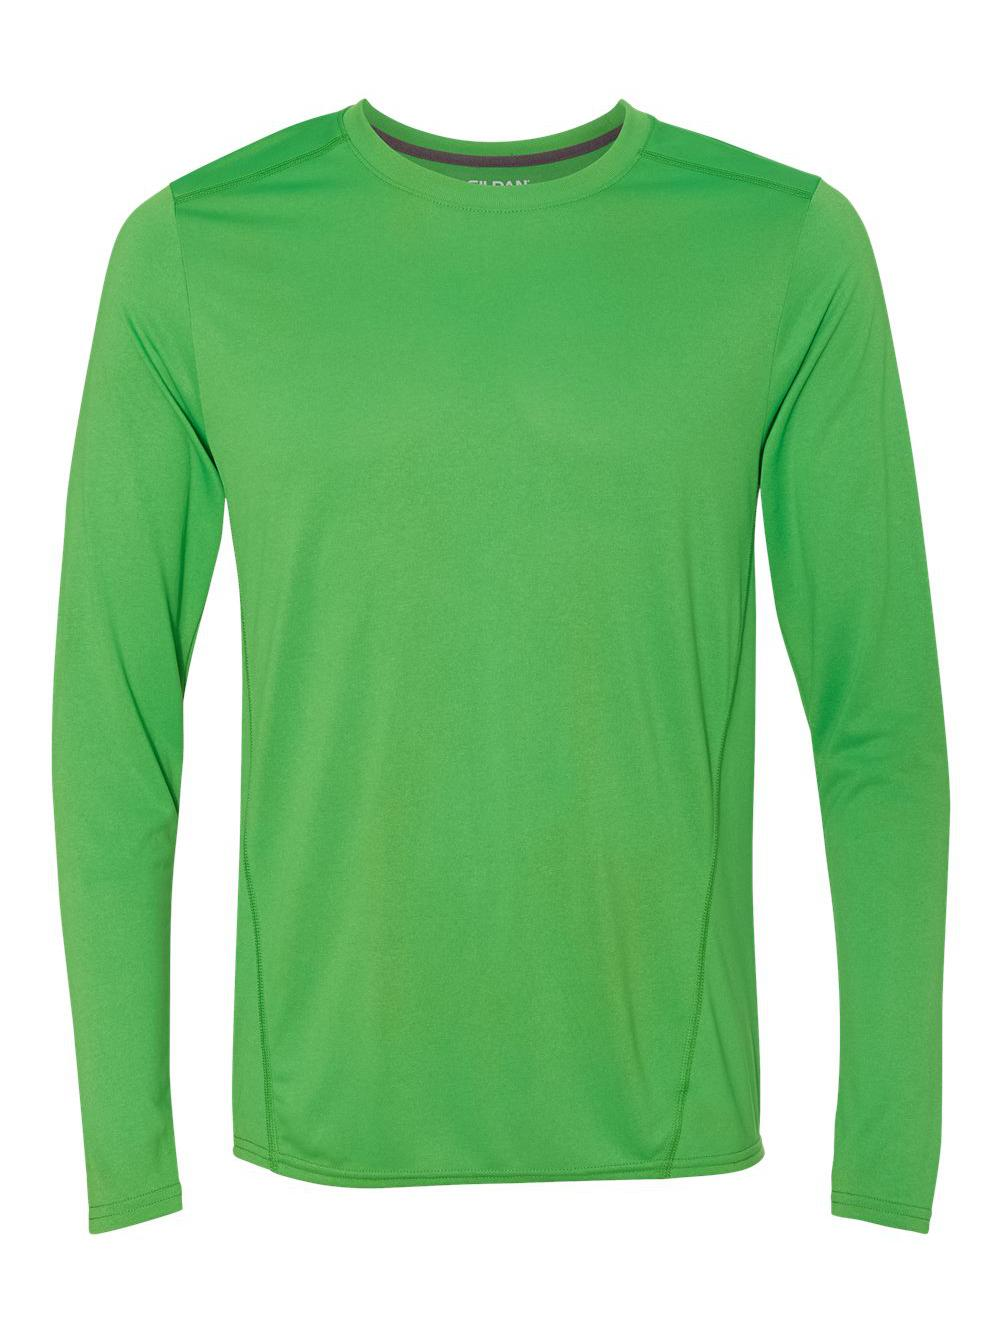 Gildan-Tech-Performance-Long-Sleeve-T-Shirt-47400 thumbnail 6